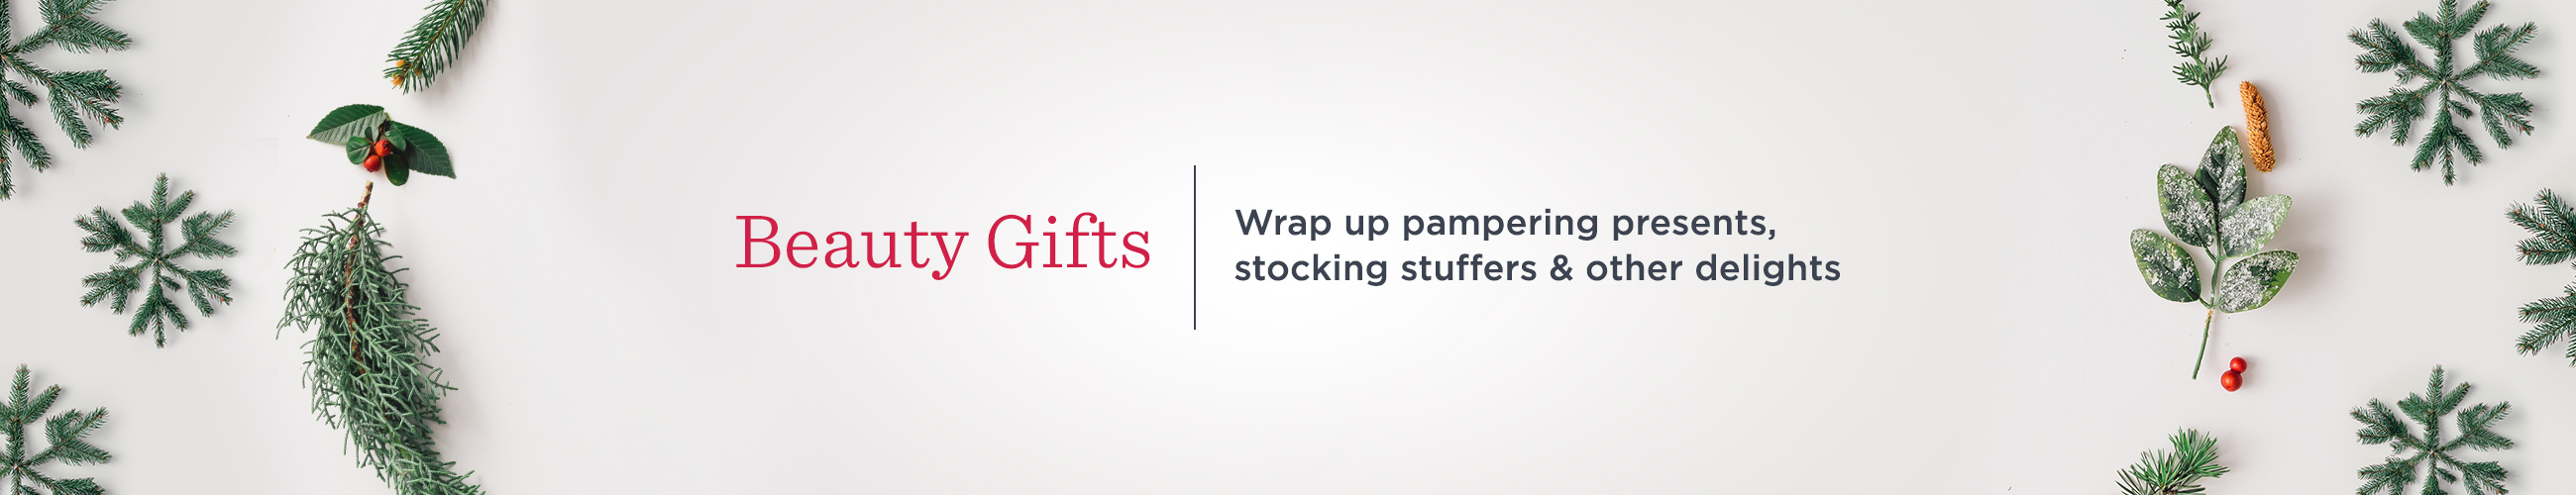 Beauty Gifts. Wrap up pampering presents, stocking stuffers & other delights